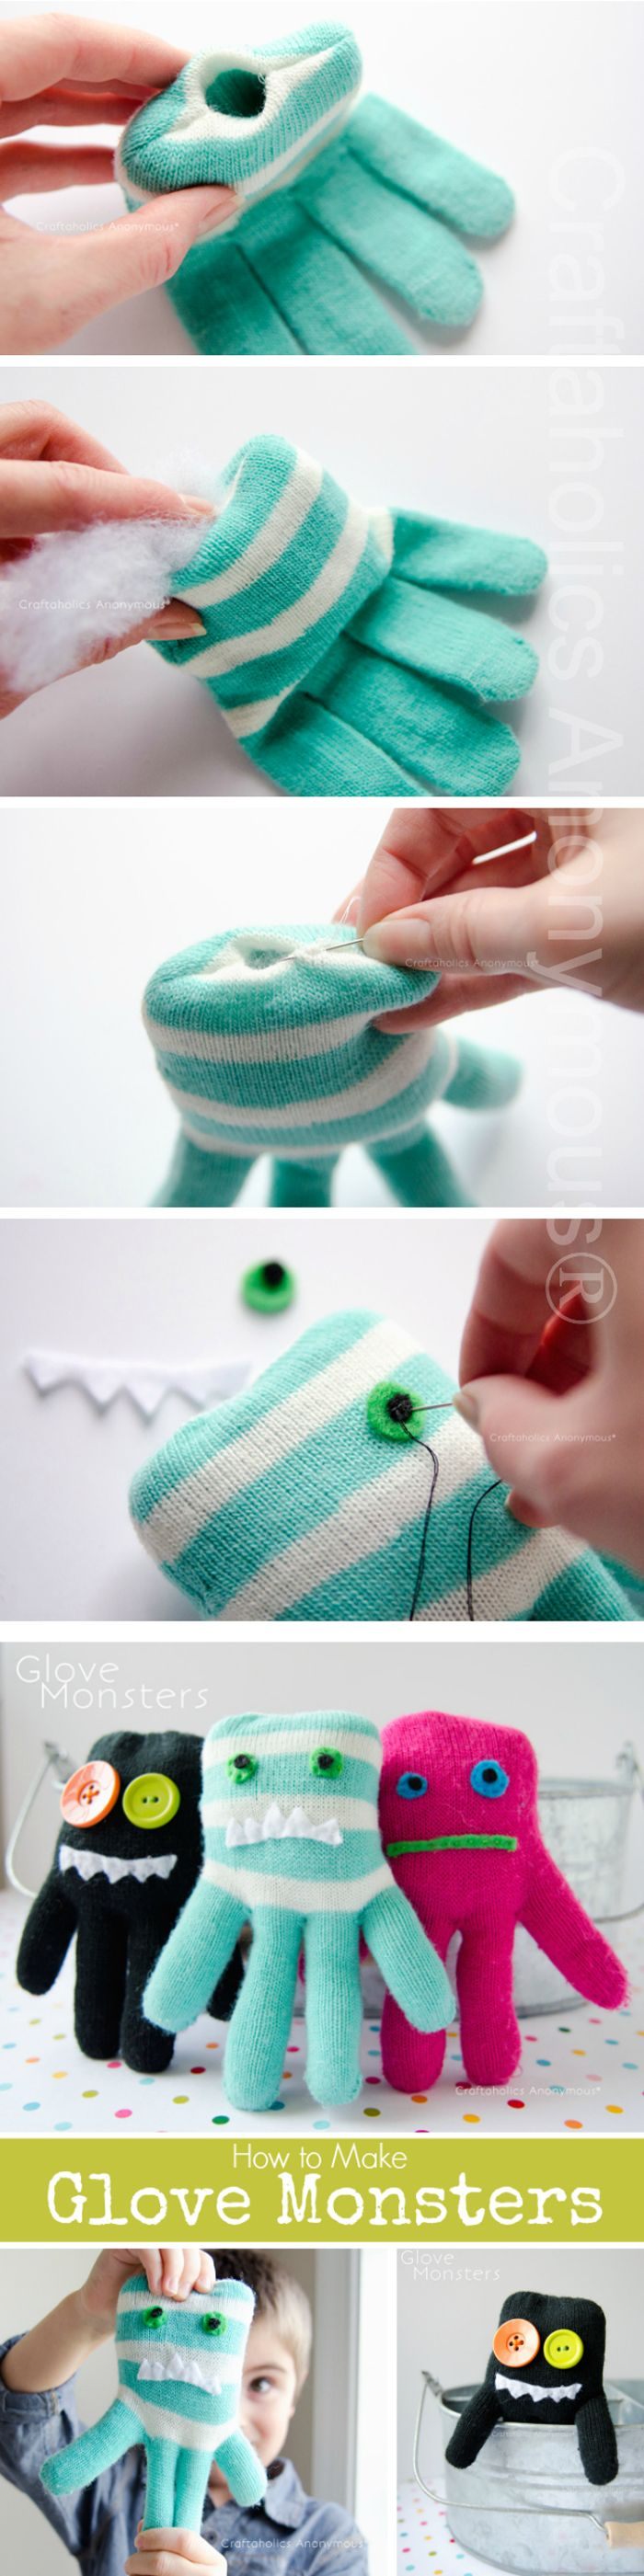 Glove Monsters-Woohoow!! Very-very-very super post!! <3 xxxHandimaniafan